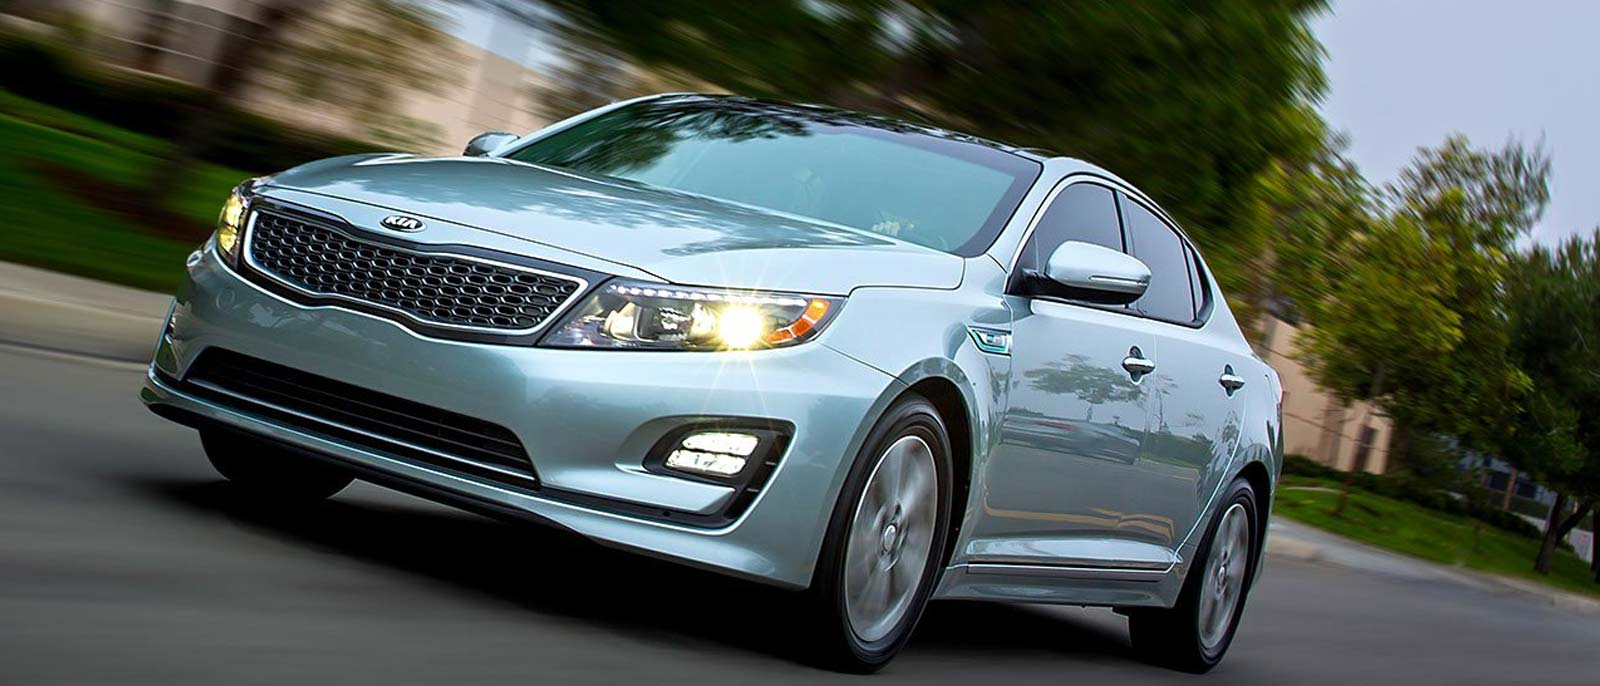 enfin allure formule kia guide hybrid bonne auto articles re optima fi a hybride la